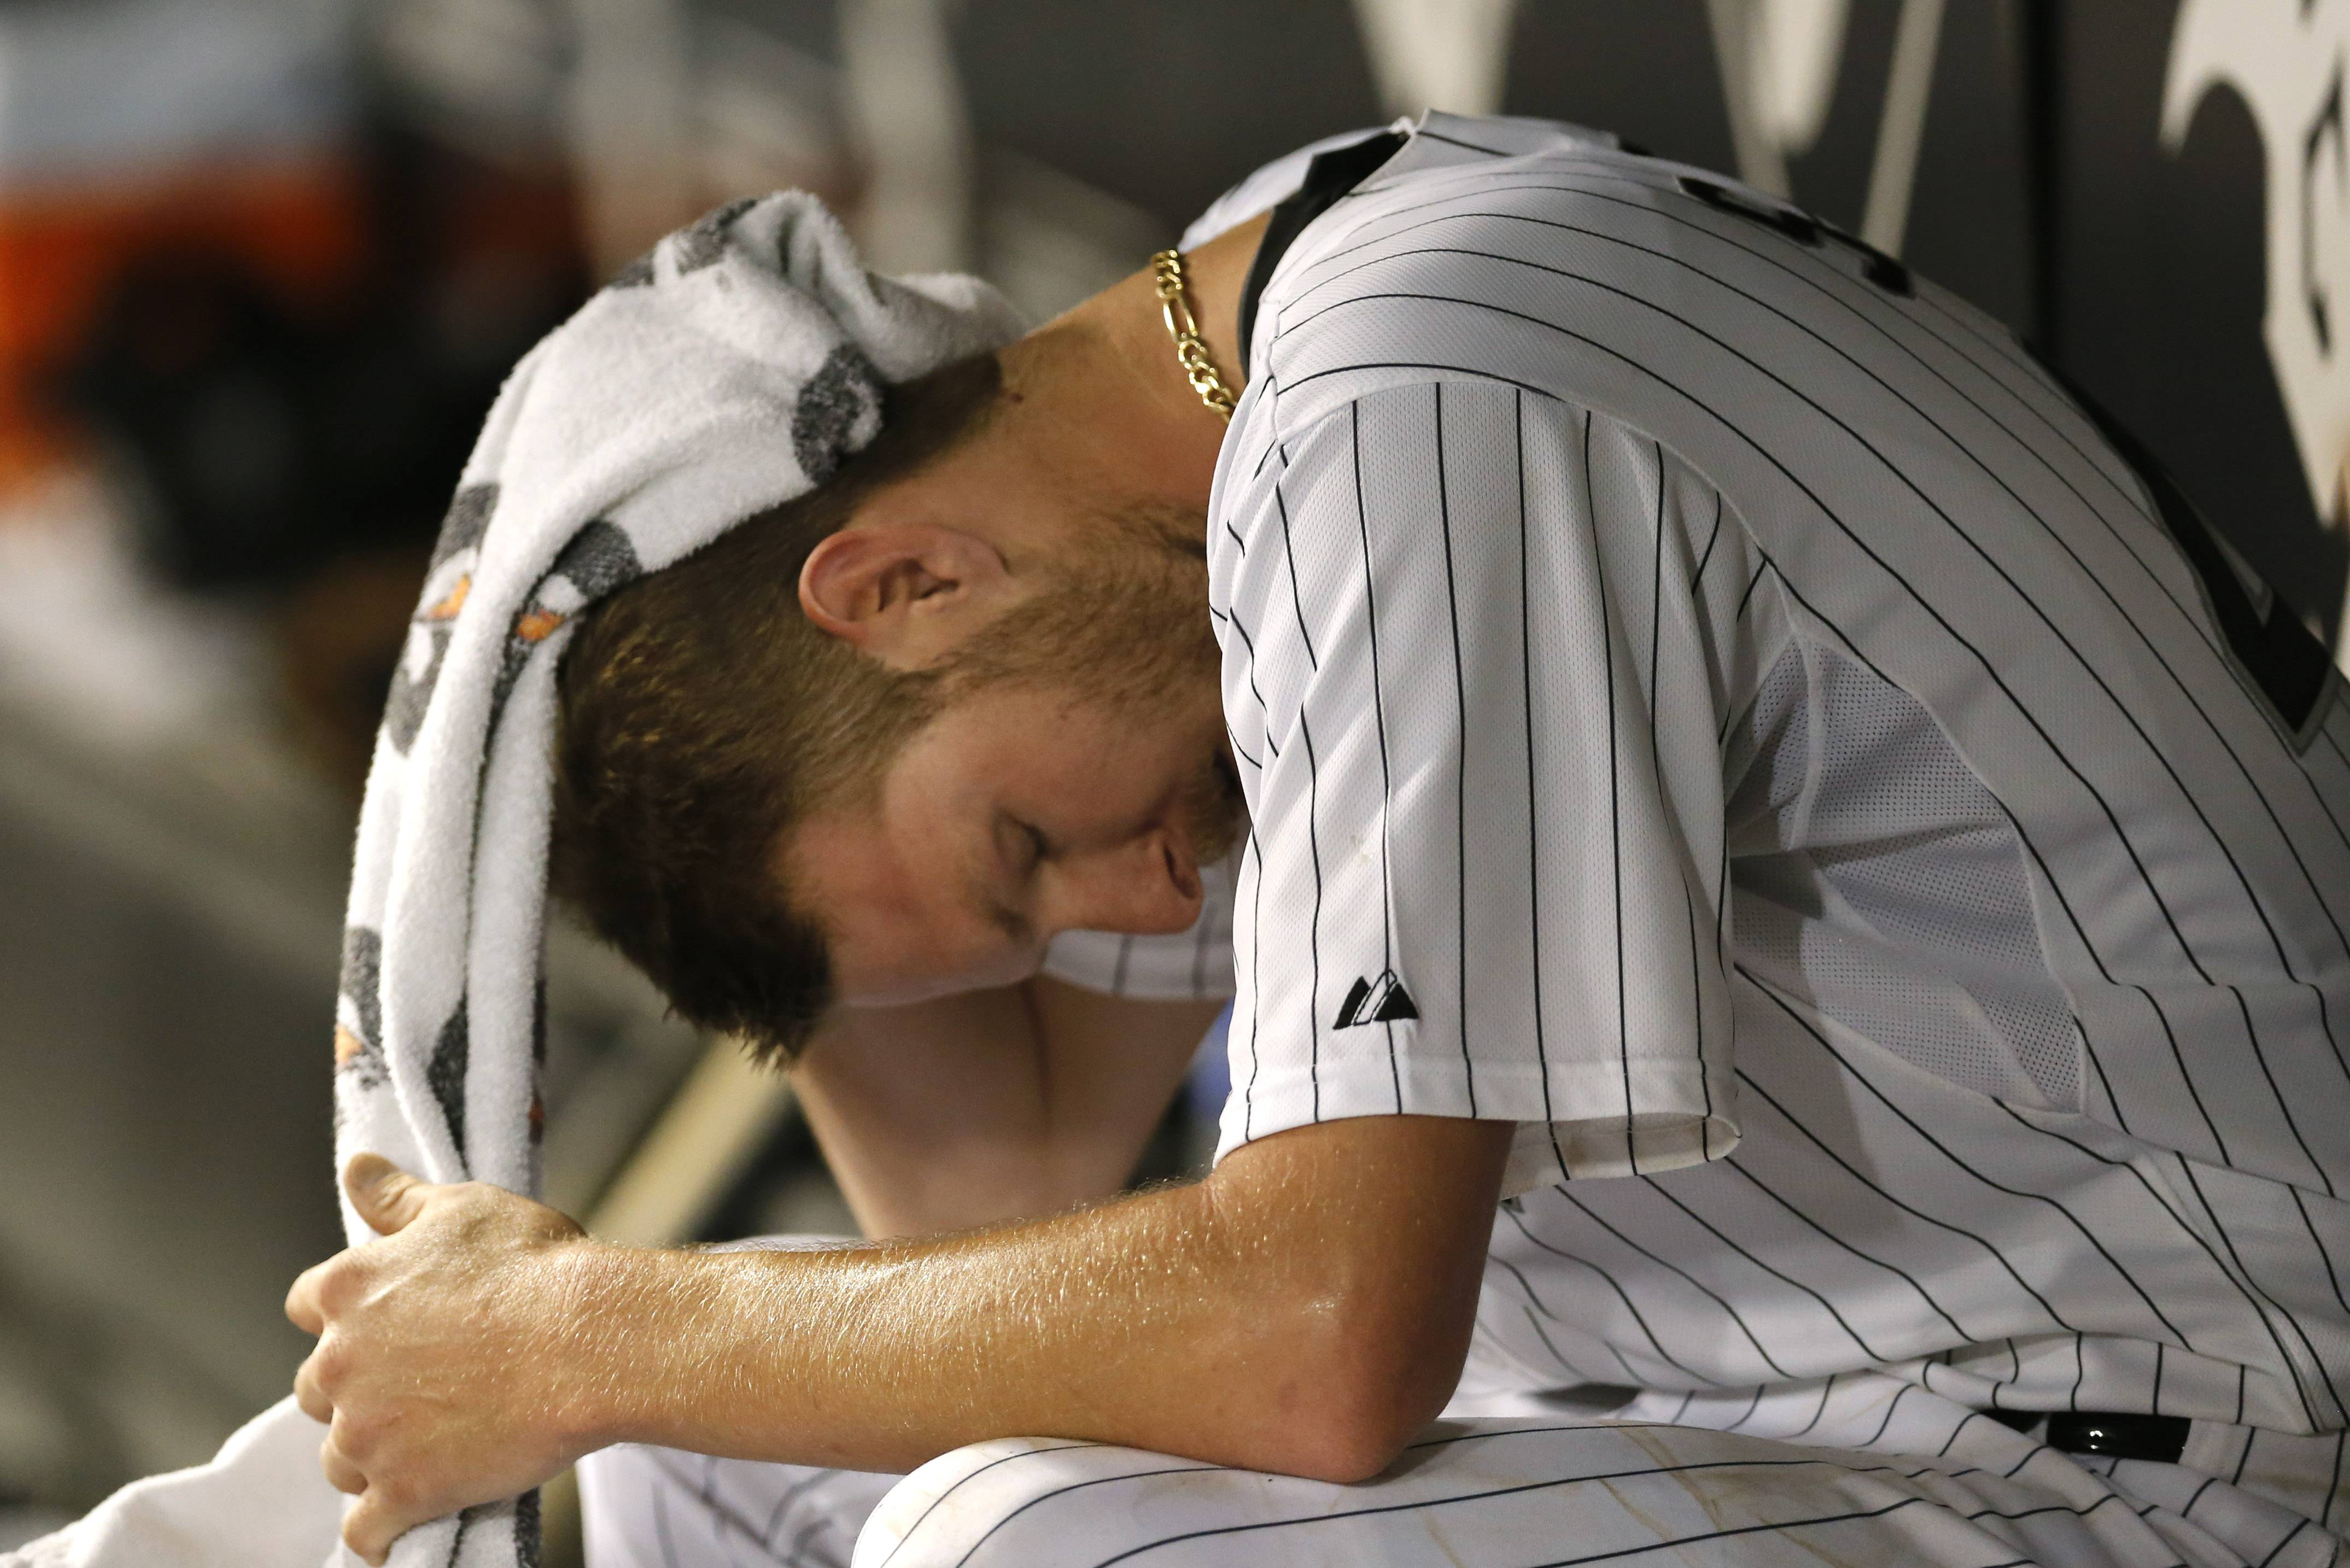 White Sox starting pitcher Chris Sale sits in the dugout after his night was over. Sale worked 6 innings, allowing 3 runs, and suffered the loss to fall to 10-3.